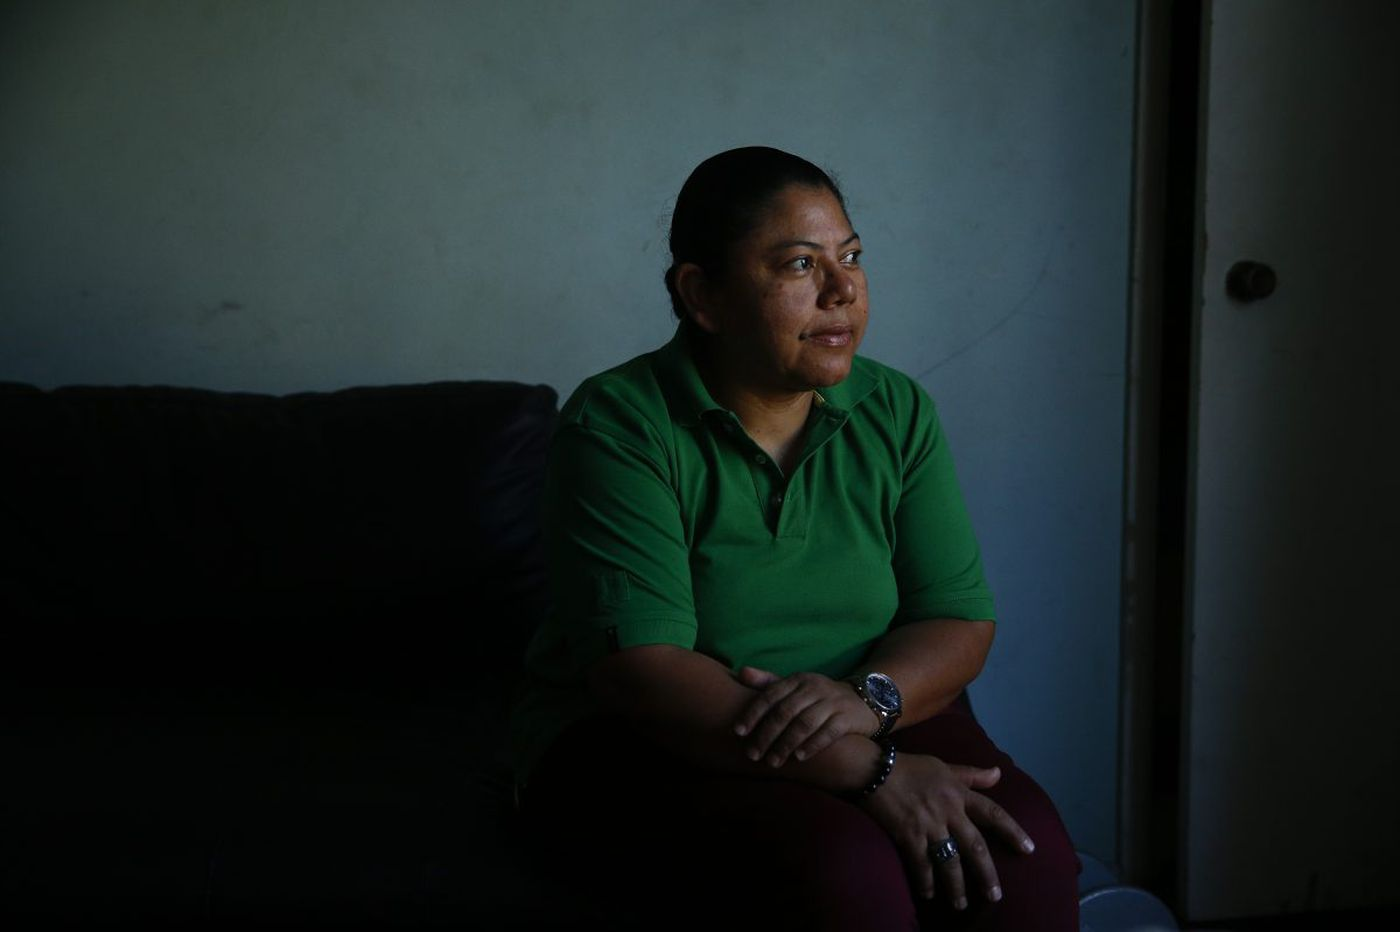 Temporary protections for some immigrants could disappear | Commentary